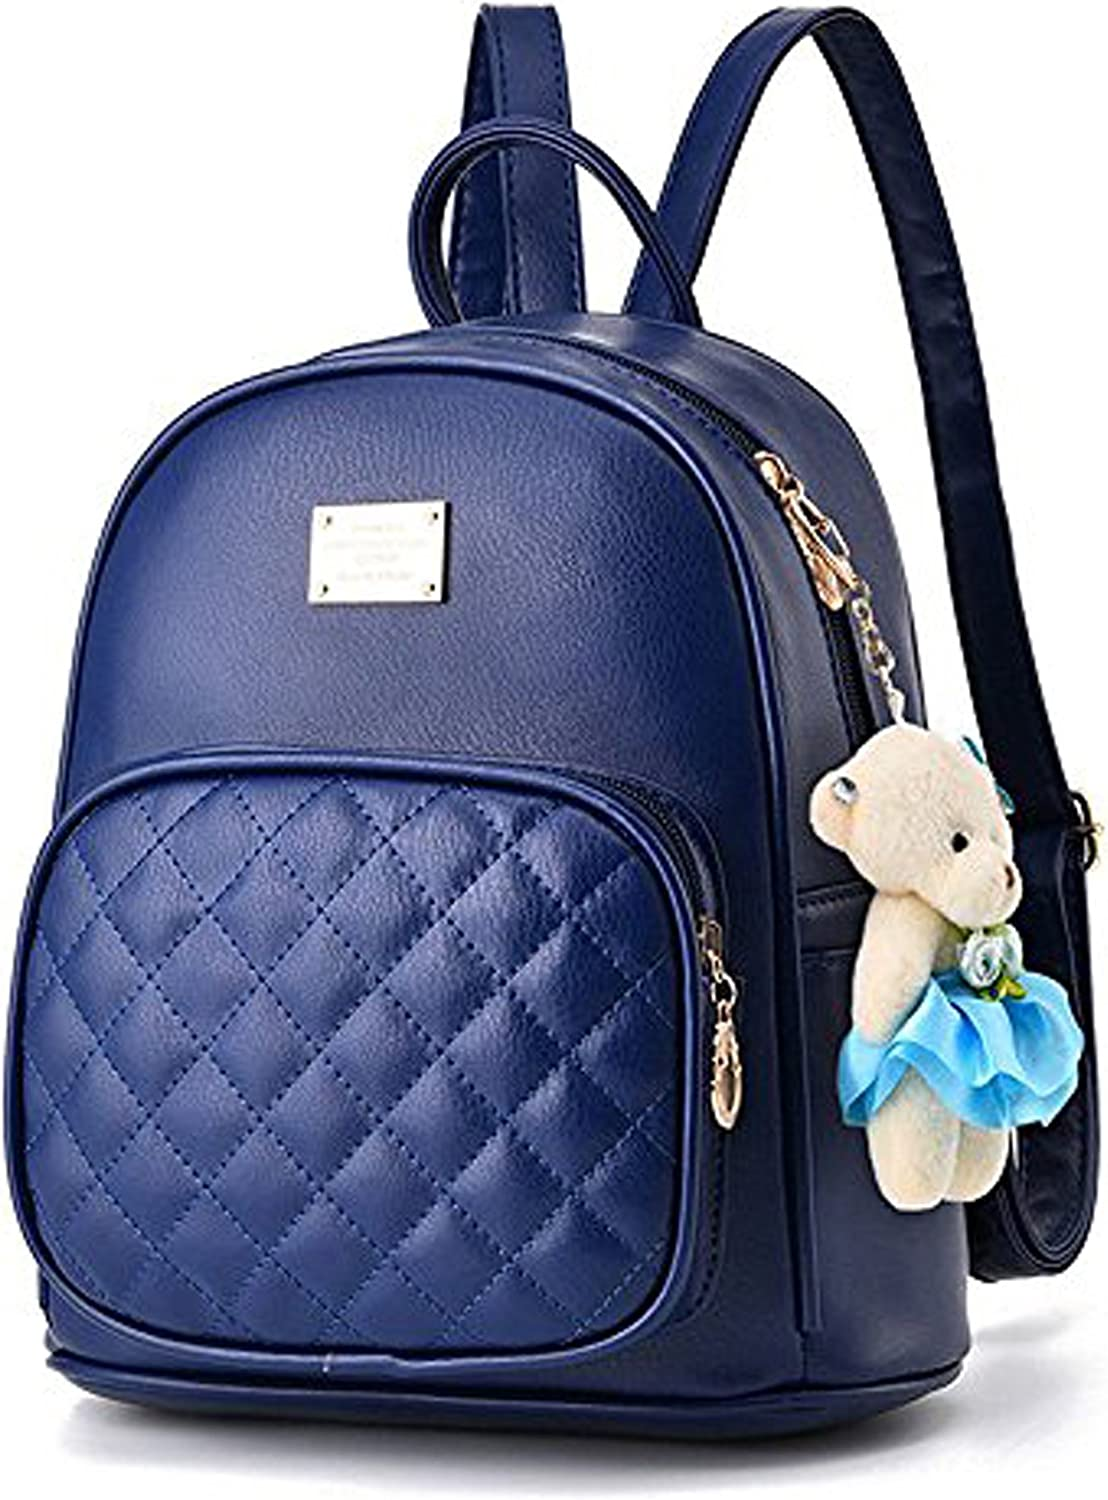 Women Cute Leather Laides Shopping Casual Backpack Travle Backpack for Girls